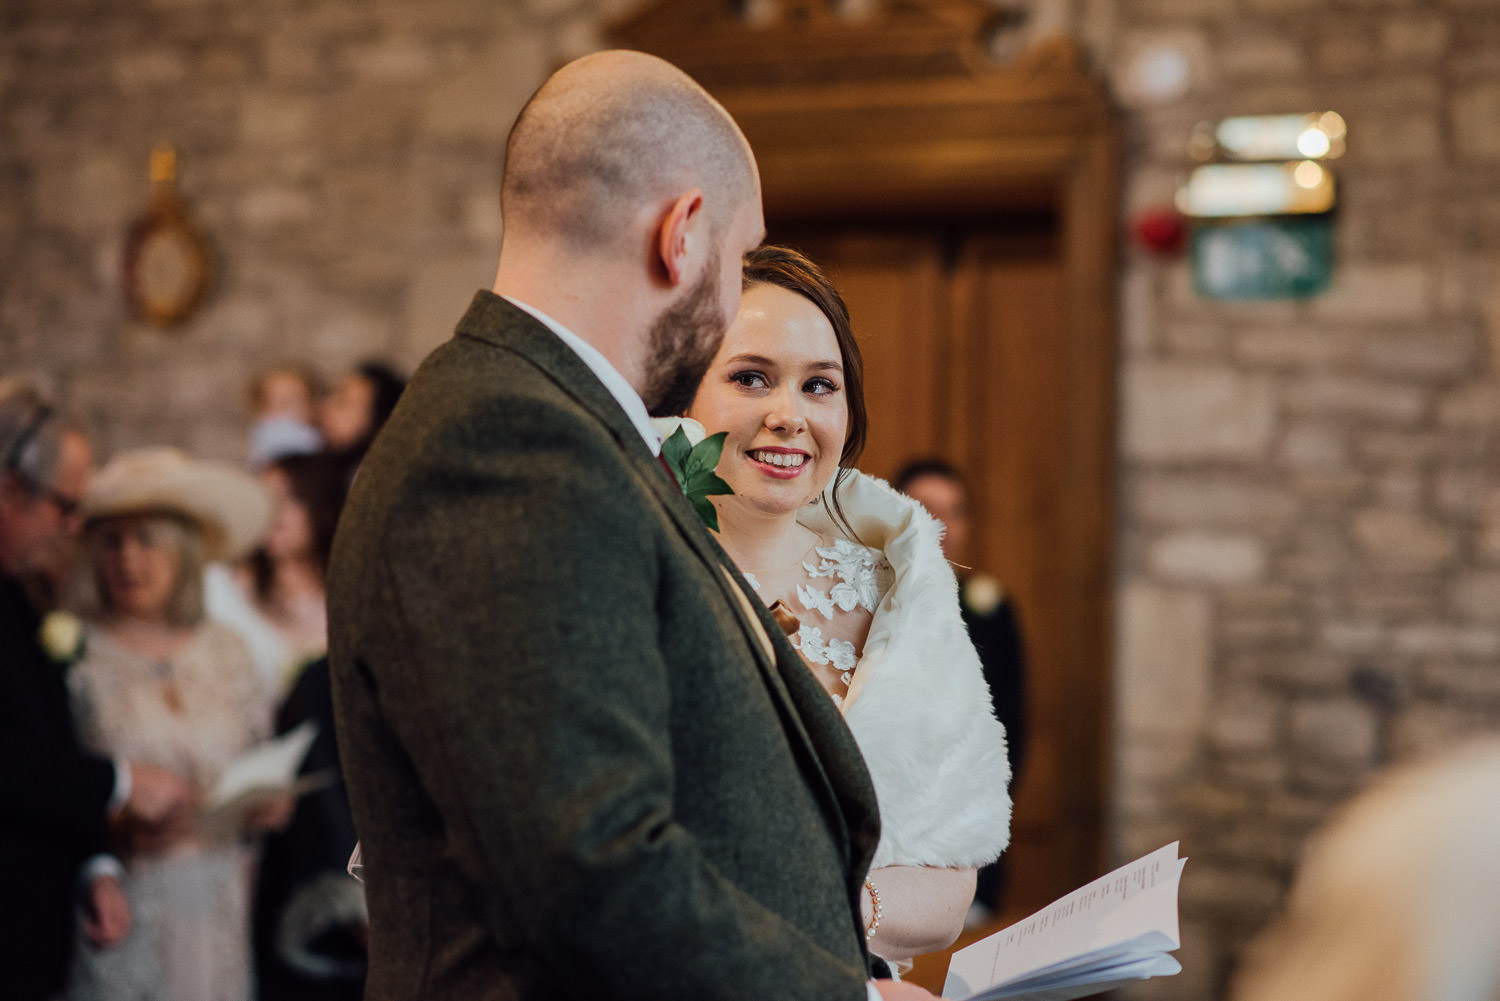 bride smiling at groom in the church ceremony by bath wedding photographer the shannons photography